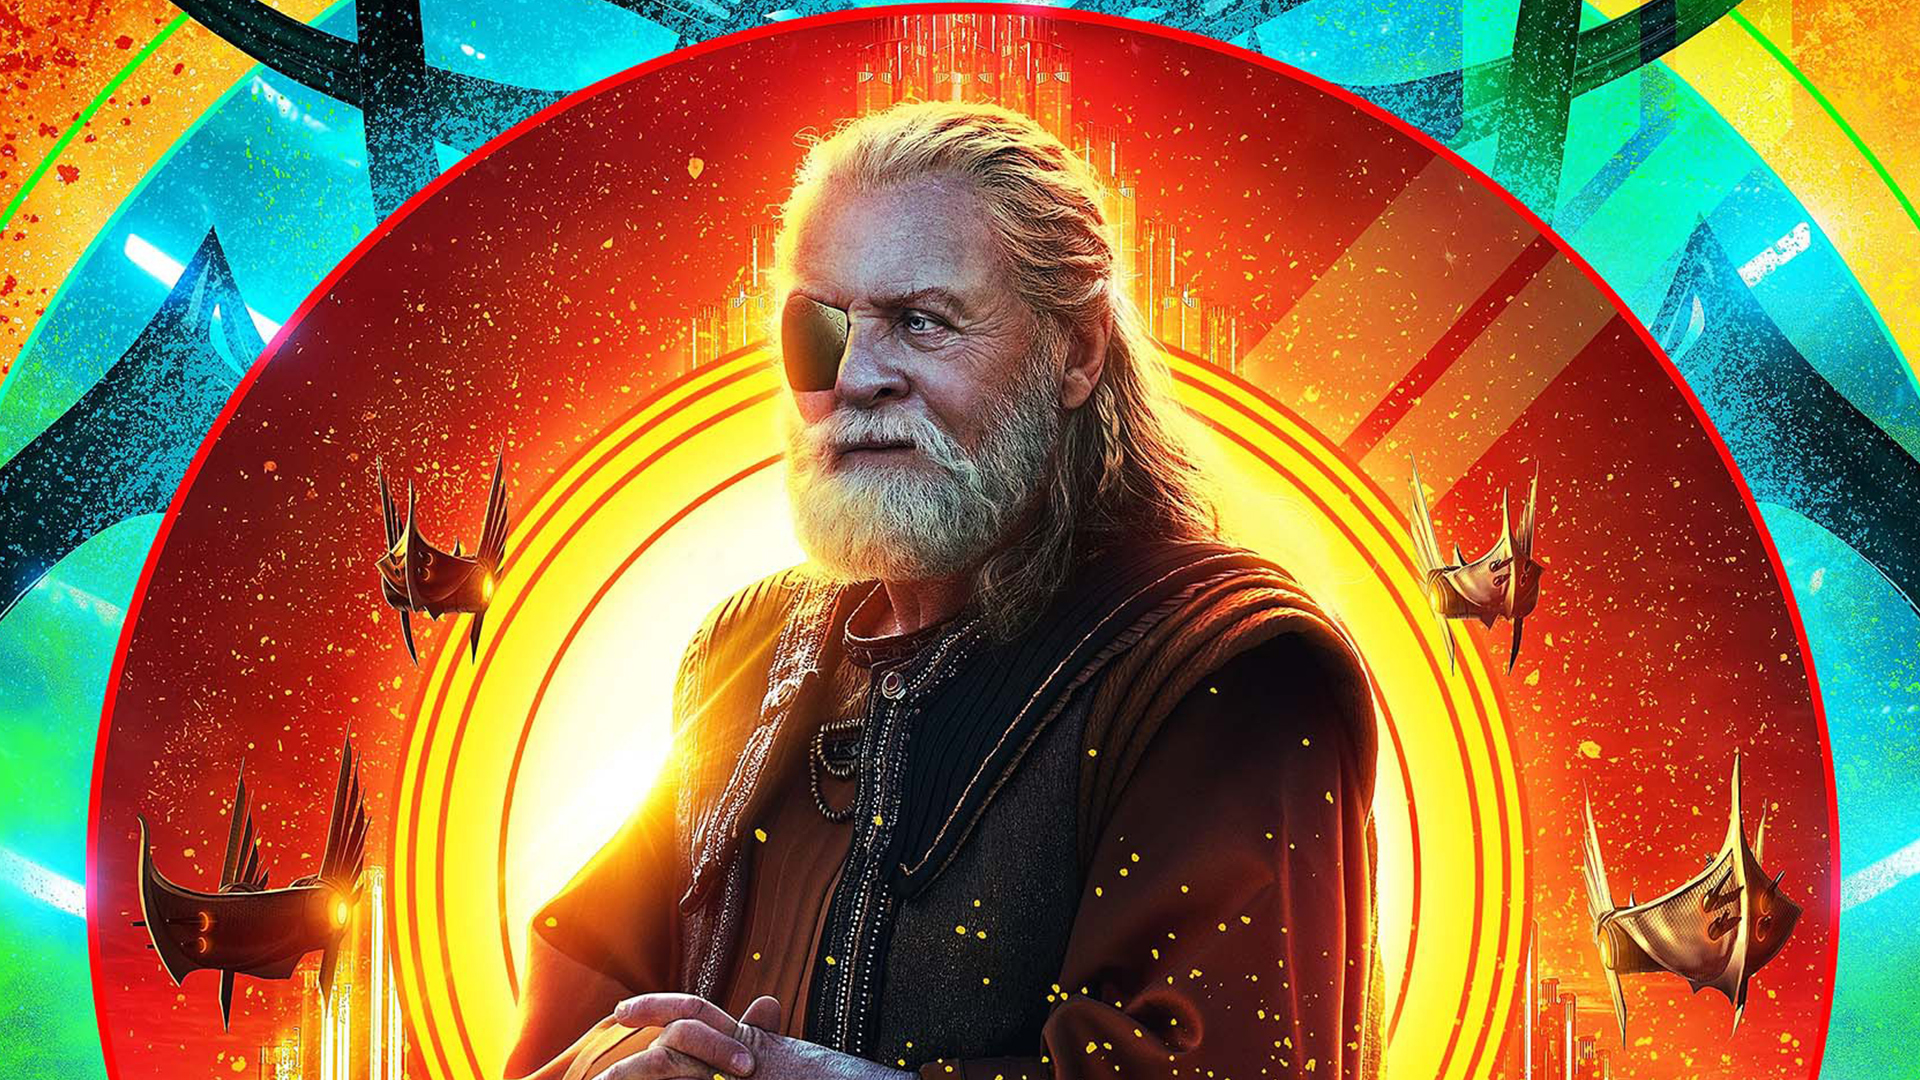 Popular Wallpaper Marvel Odin - anthony-hopkins-as-odin-marvel-comics-in-thor-ragnarok_61137_1920x1080  Collection_784129.jpg